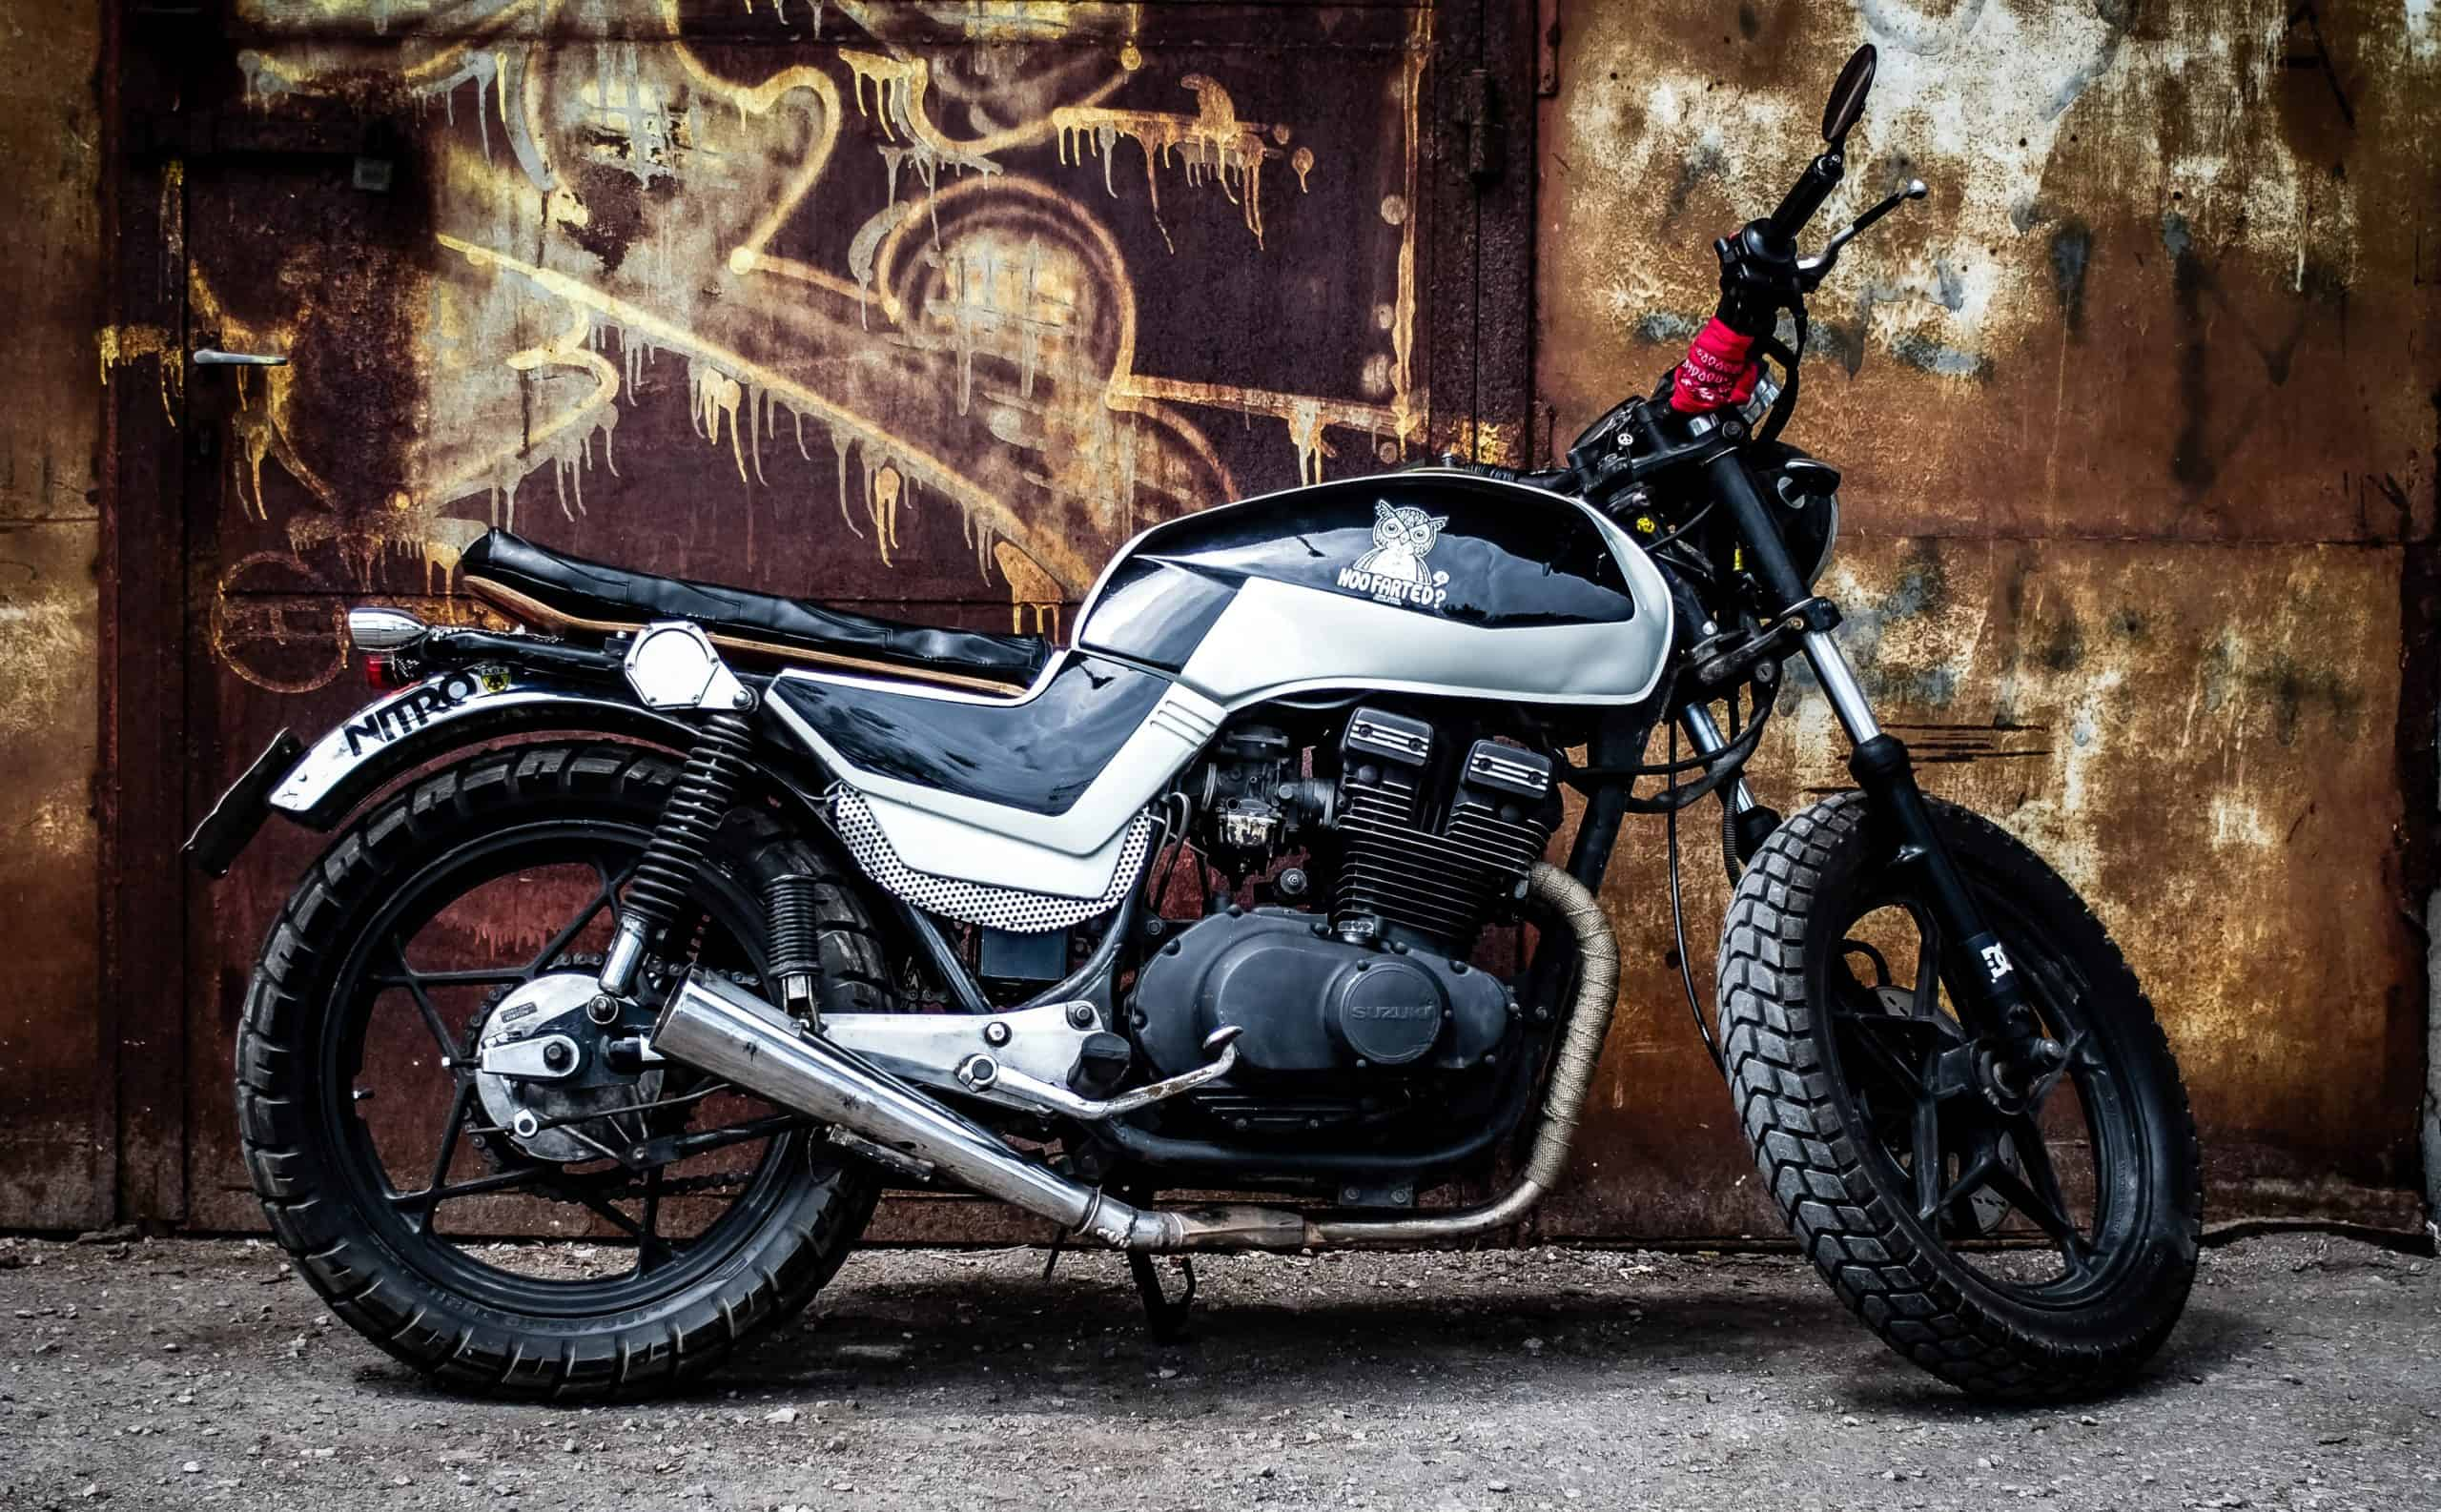 Indian's FTR 1200 S Motorcycle Is Everything